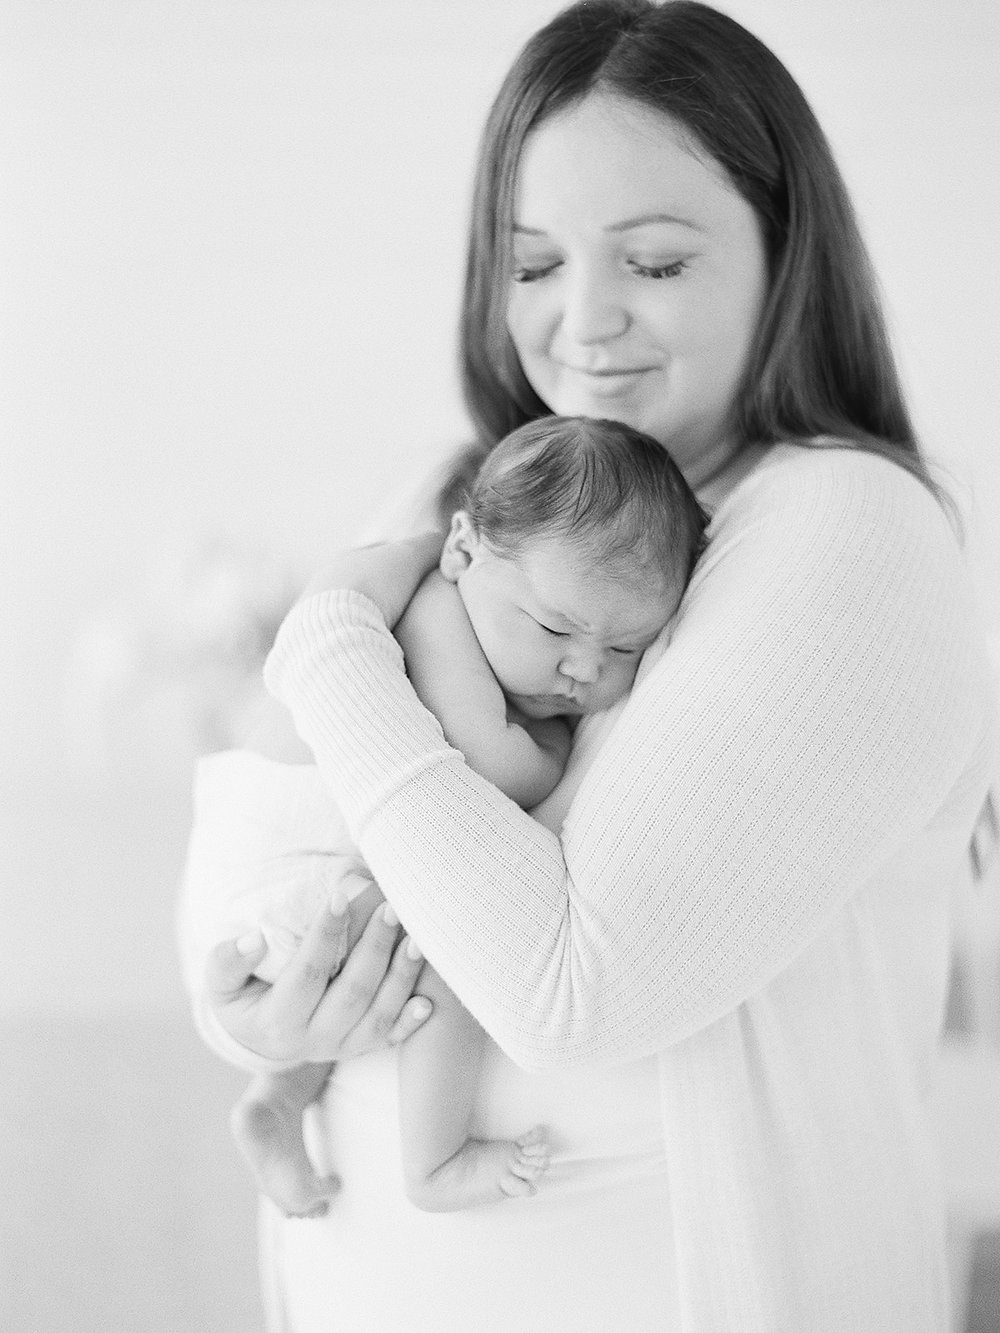 lovely mother and baby photo shoot inspiration